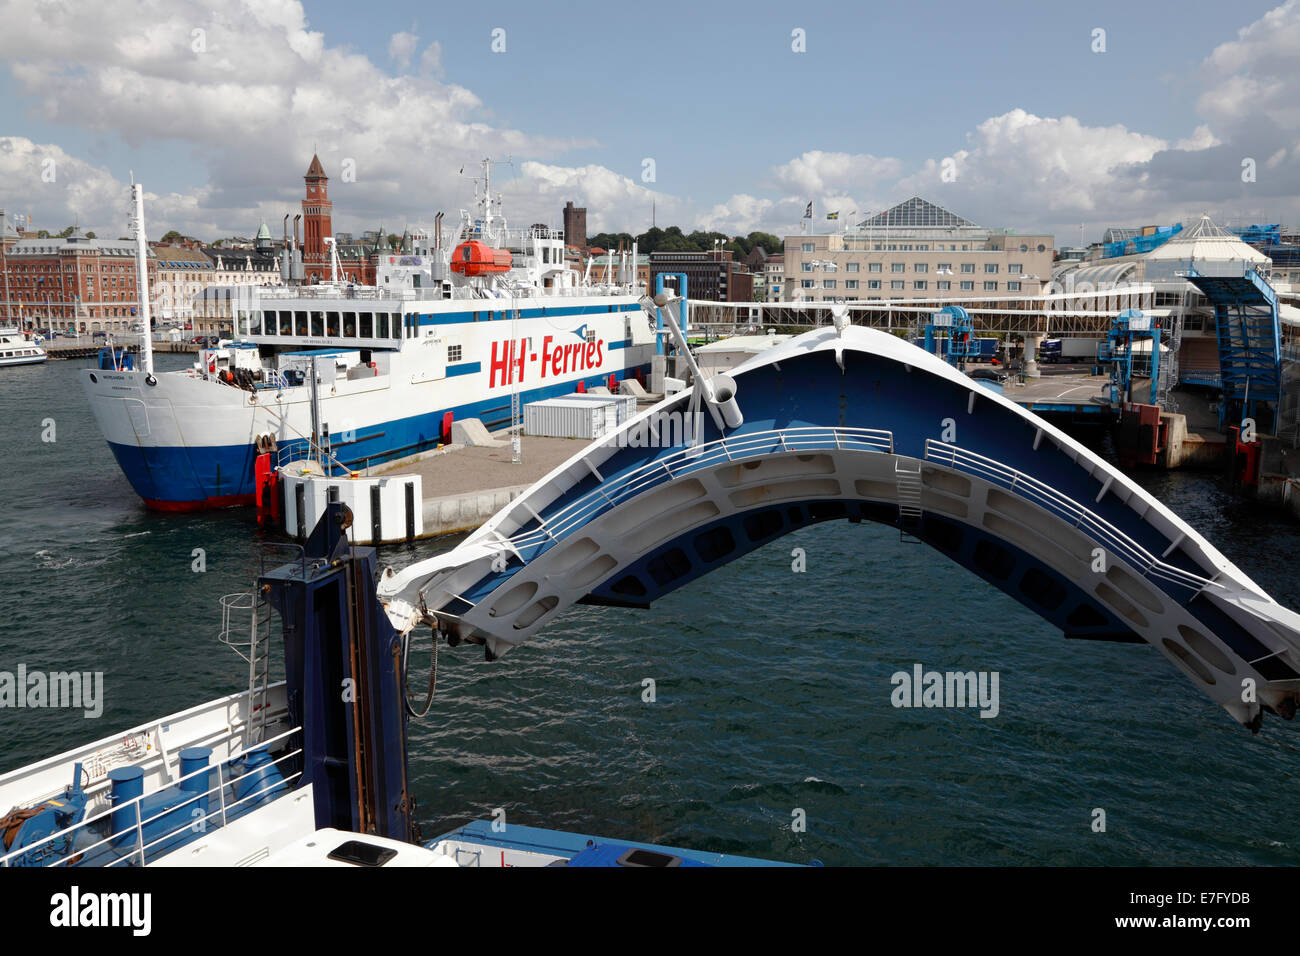 Scandlines ferry TYCHO BRAHE berths in Helsingborg beside the HH-ferry after the 20 minutes crossing of Oresund - Stock Image